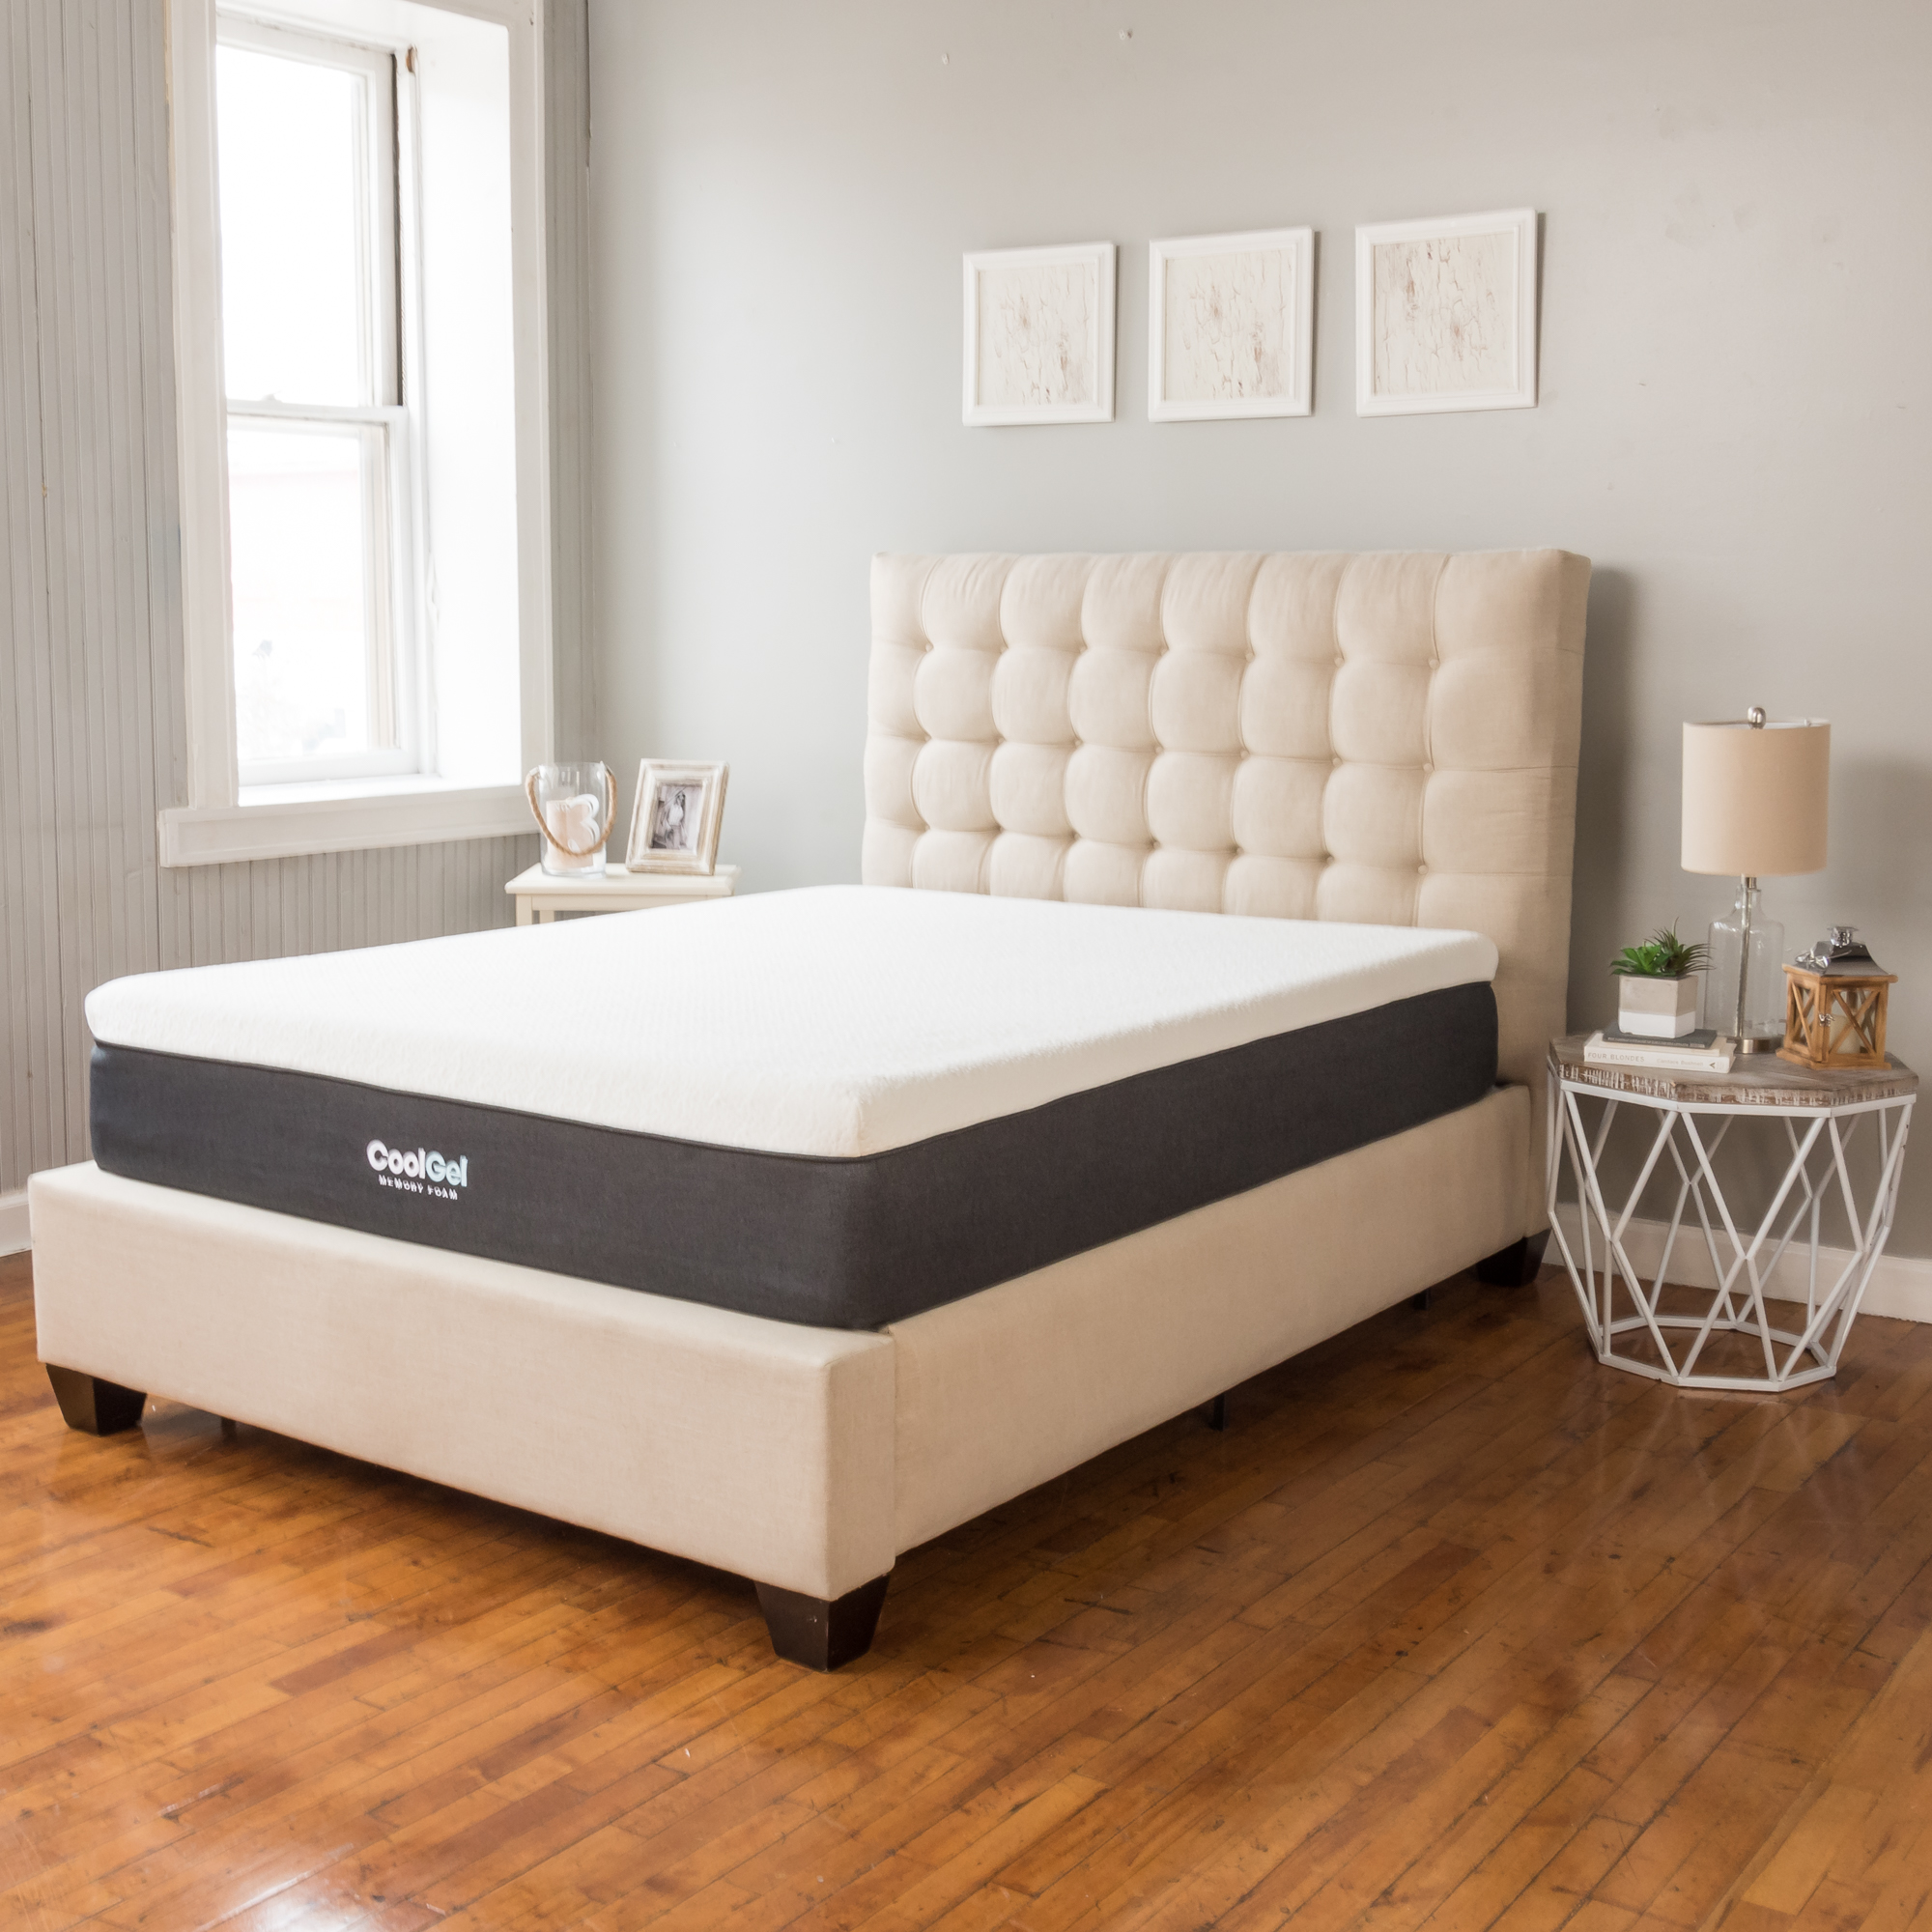 "Modern Sleep Cool Gel 12"" Ventilated Gel Memory Foam Mattress, Multiple Sizes with Mainstays HUGE Pillow in 20""x28"" in Blue and White Stripe Bundle"